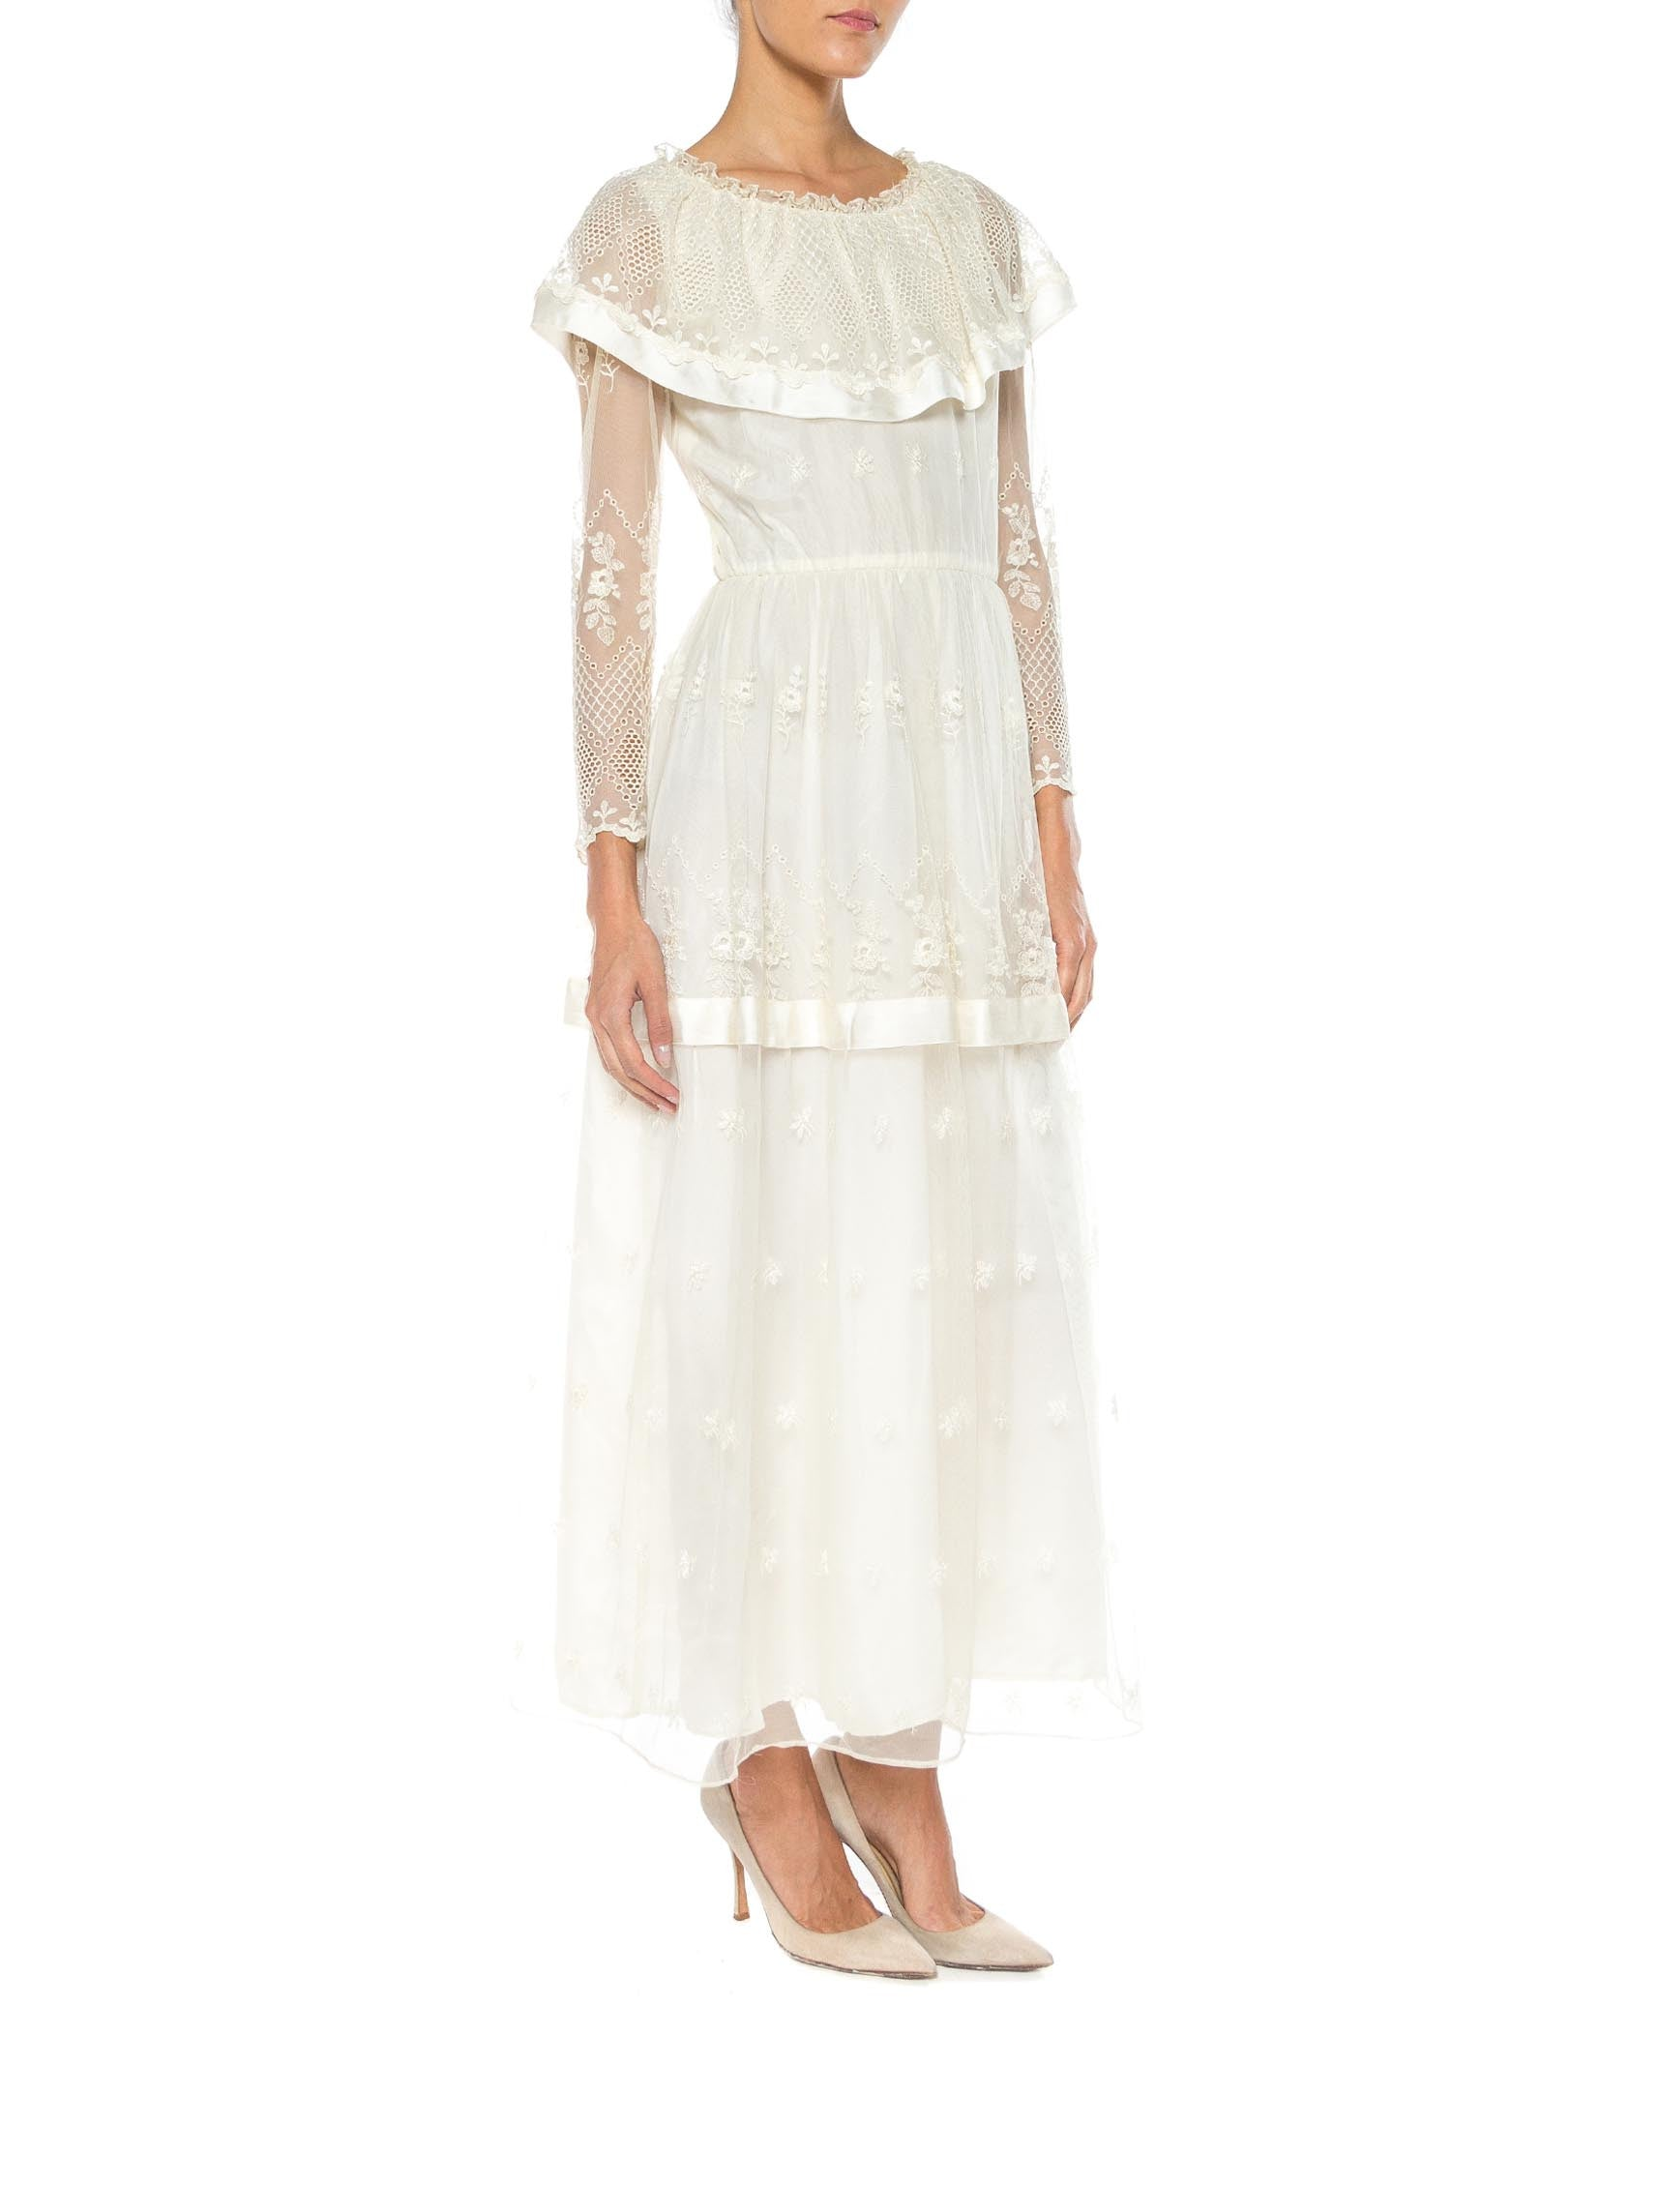 1970S MAG FORTAIL Ivory Poly Blend Chiffon & Lace Net Maxi Dress